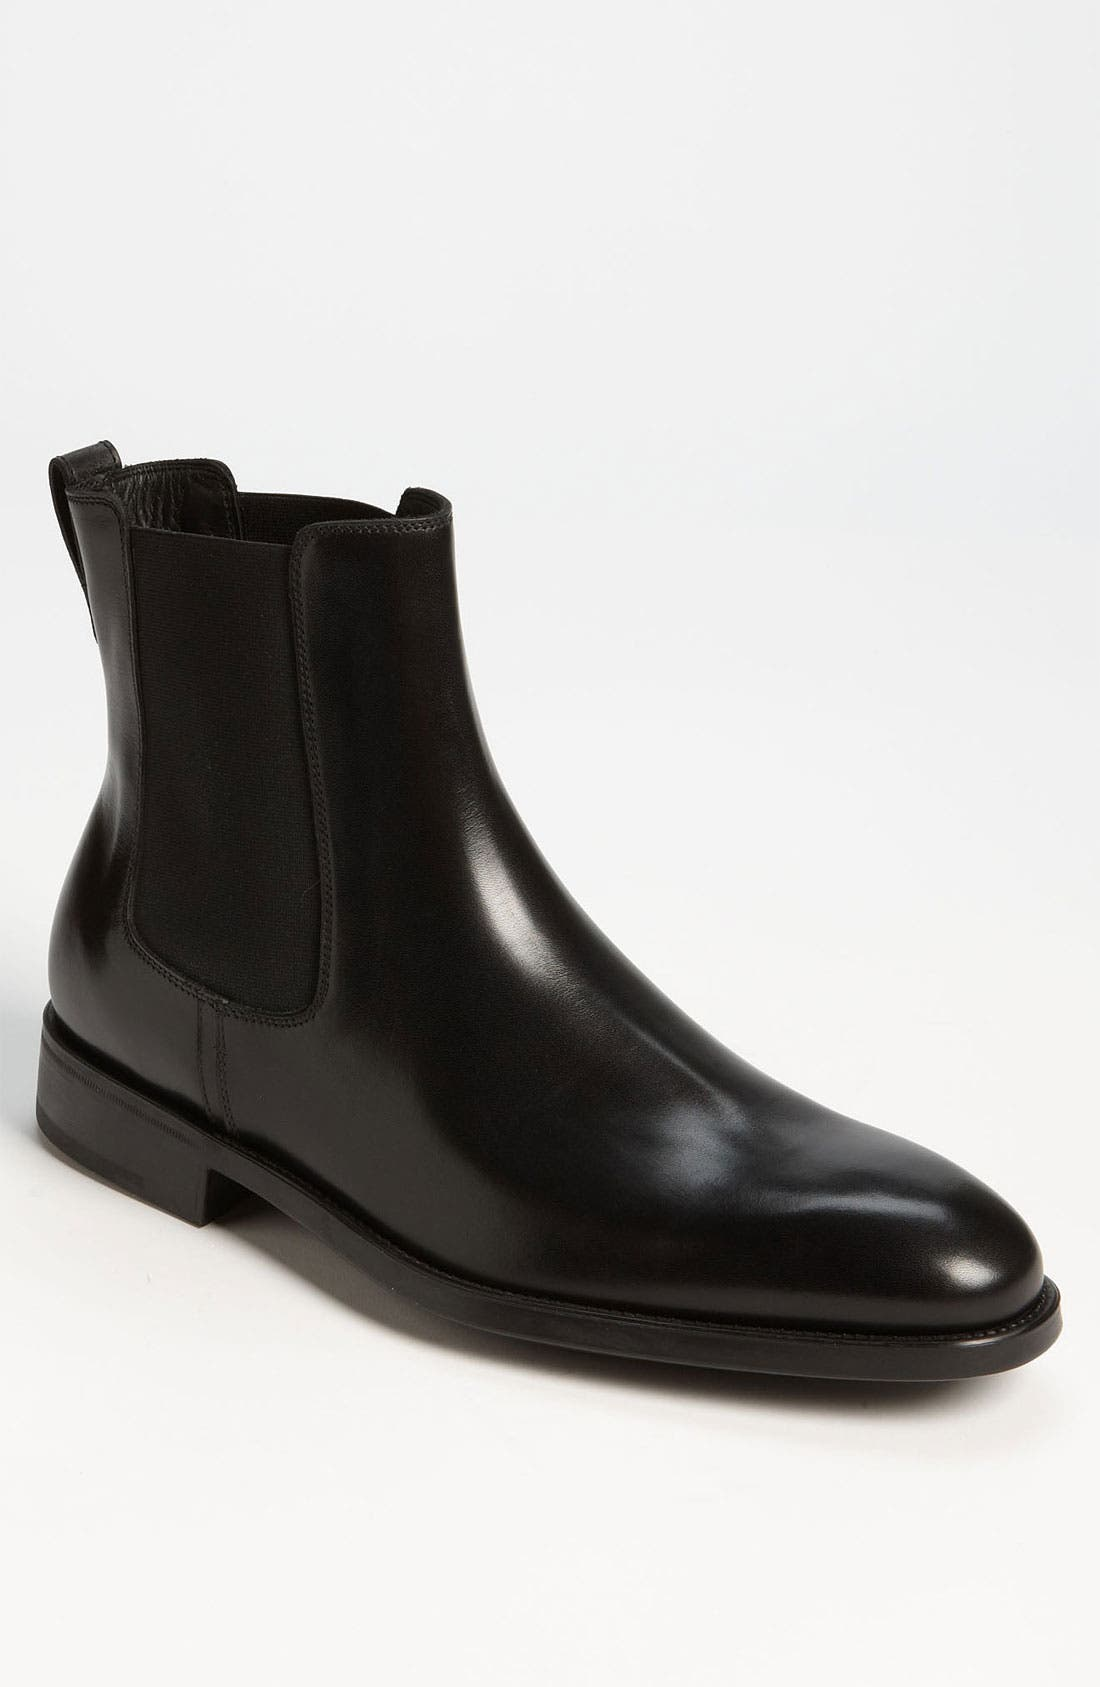 Alternate Image 1 Selected - Salvatore Ferragamo 'Arden' Chelsea Boot (Online Only)